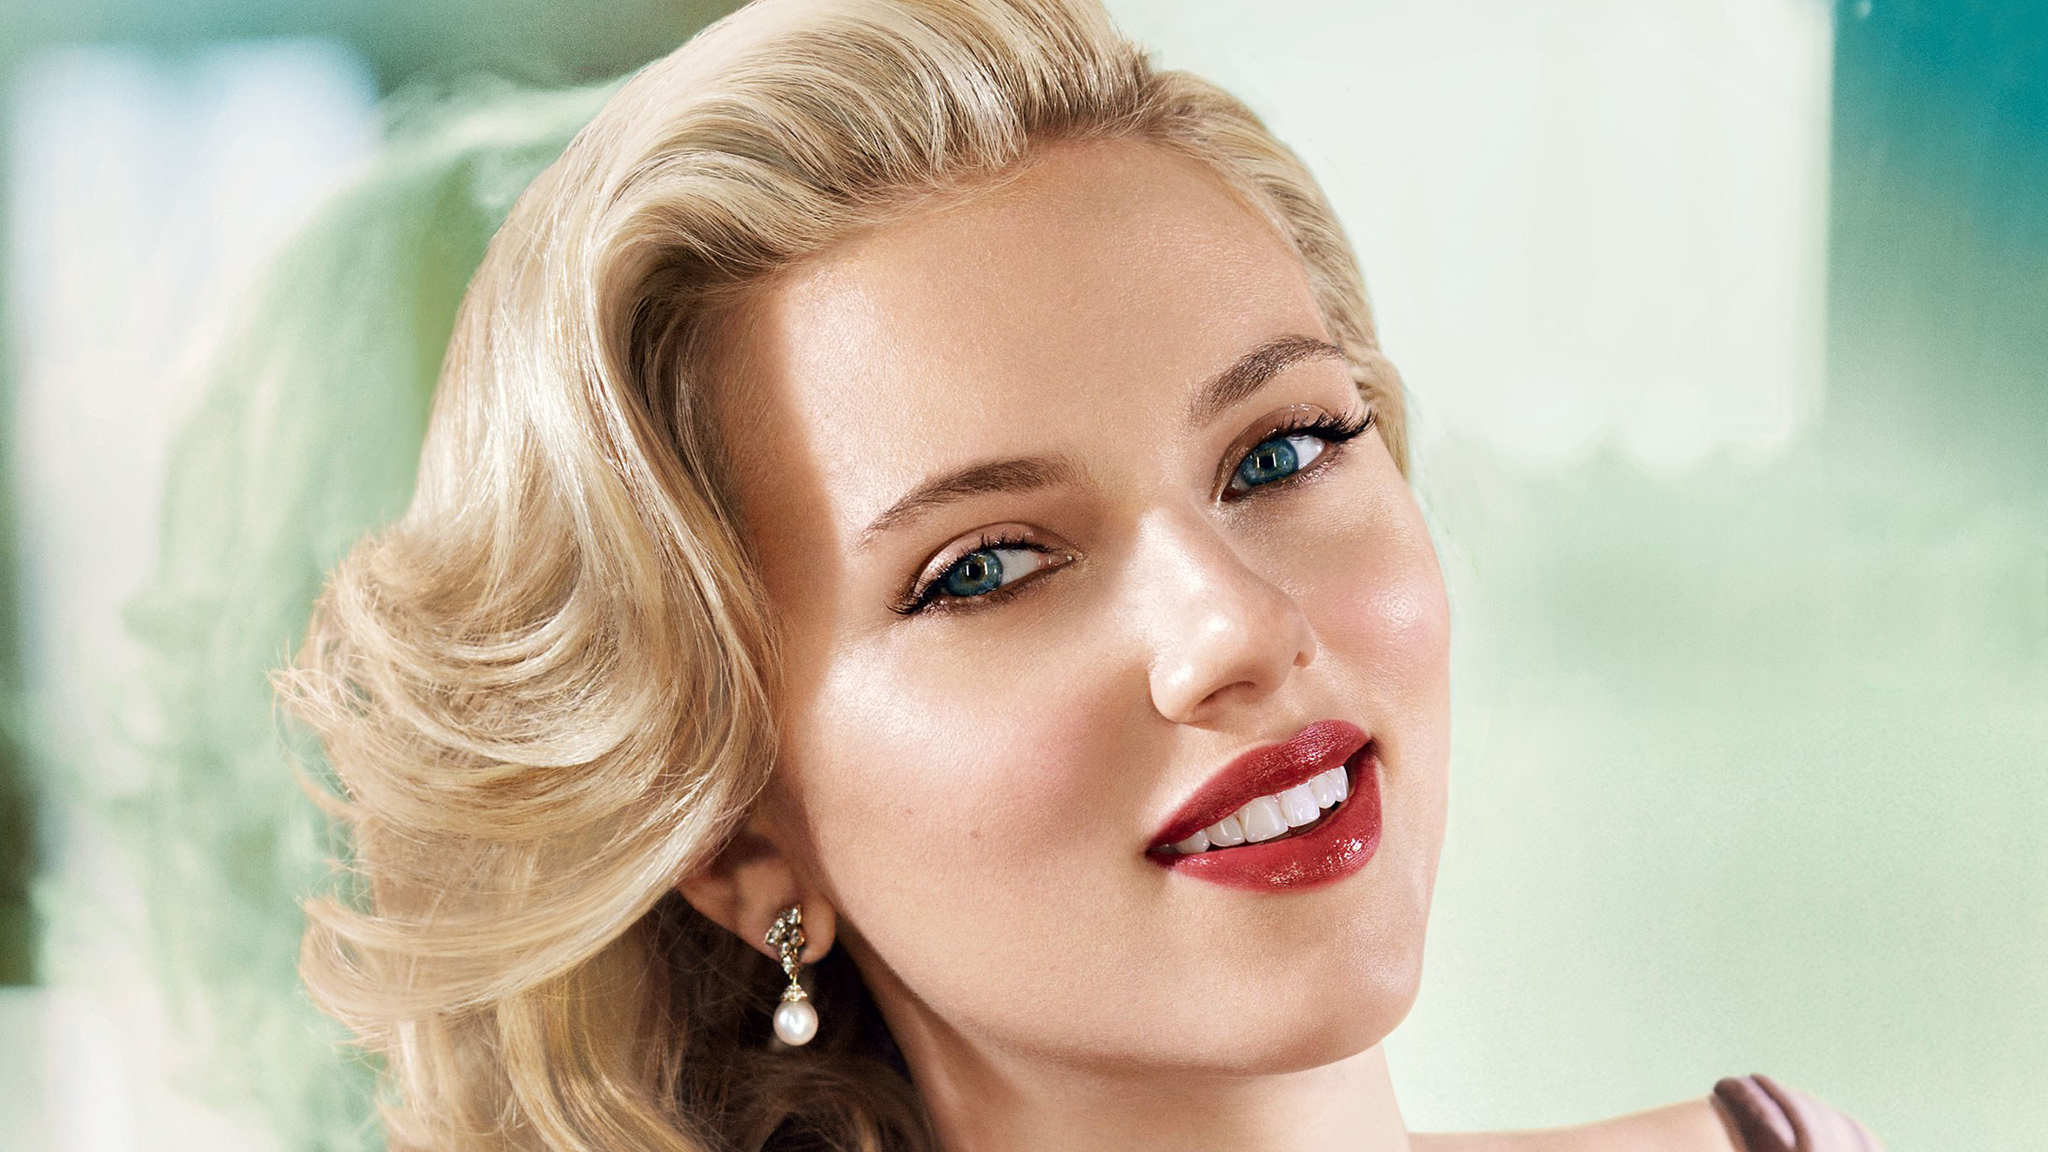 Scarlett Johansson Wallpaper: Scarlett Johansson Makeup HD Wallpaper 65778 2048x1152px